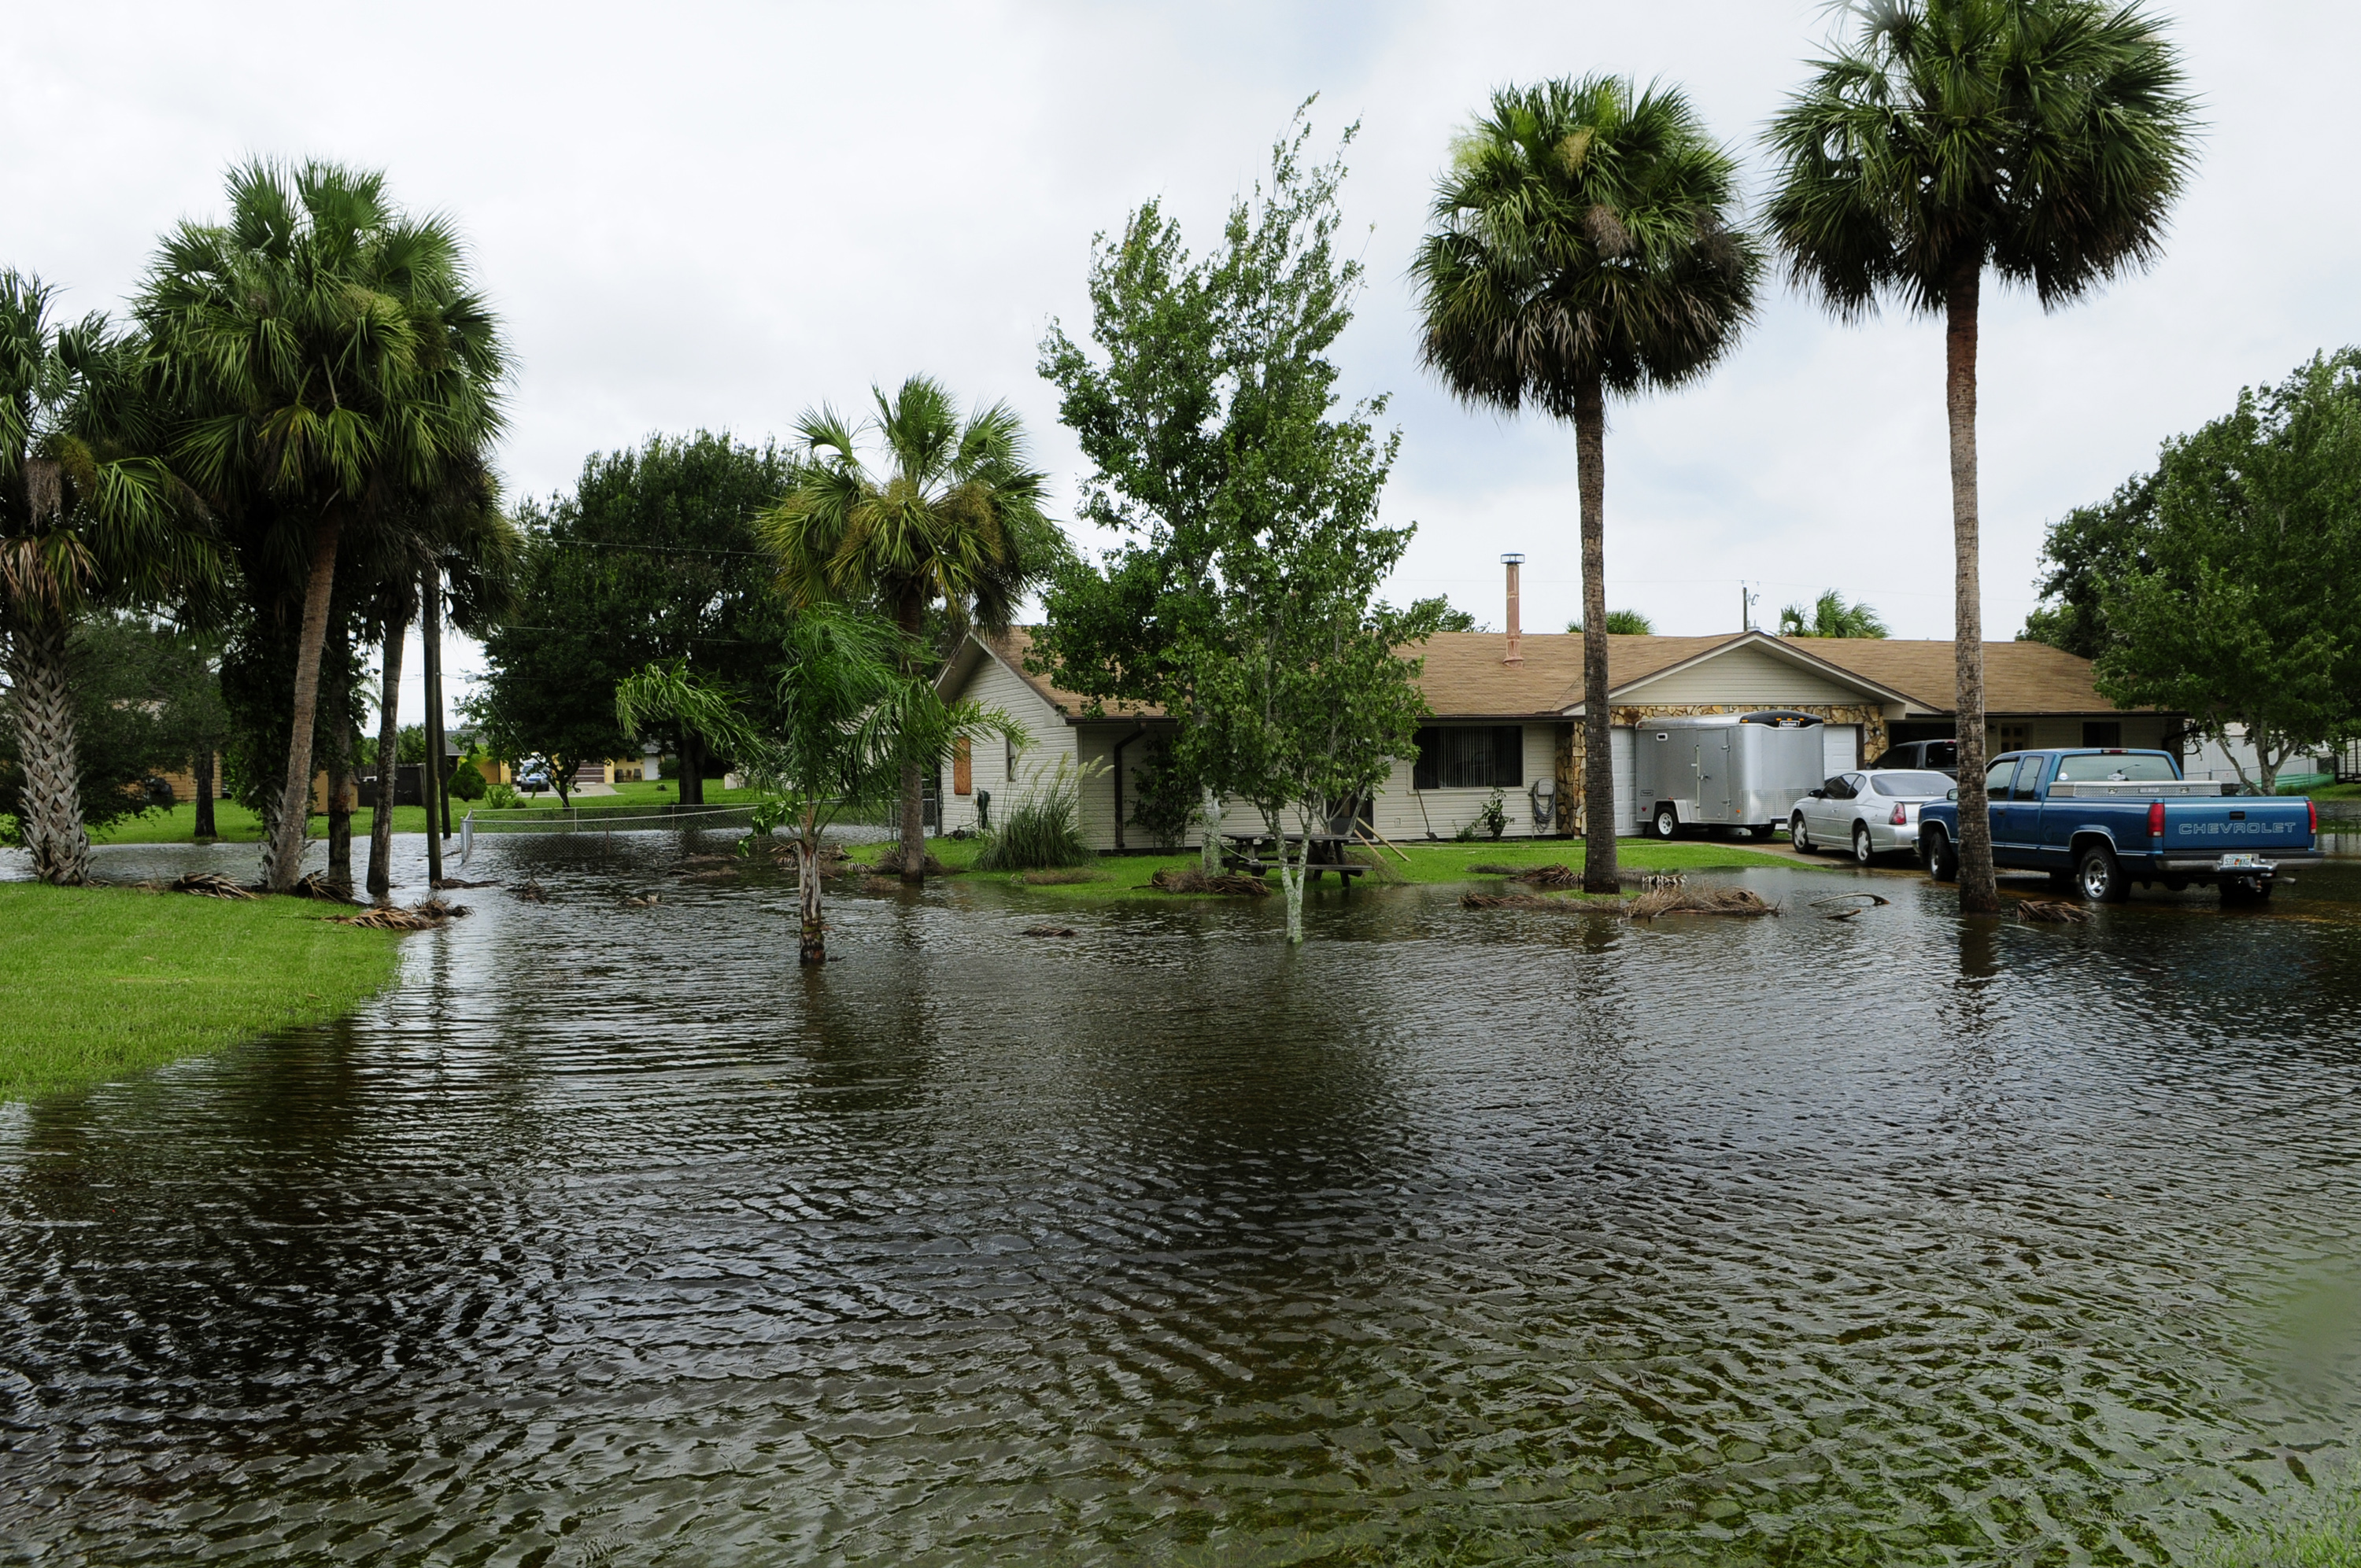 Flooded street in Florida